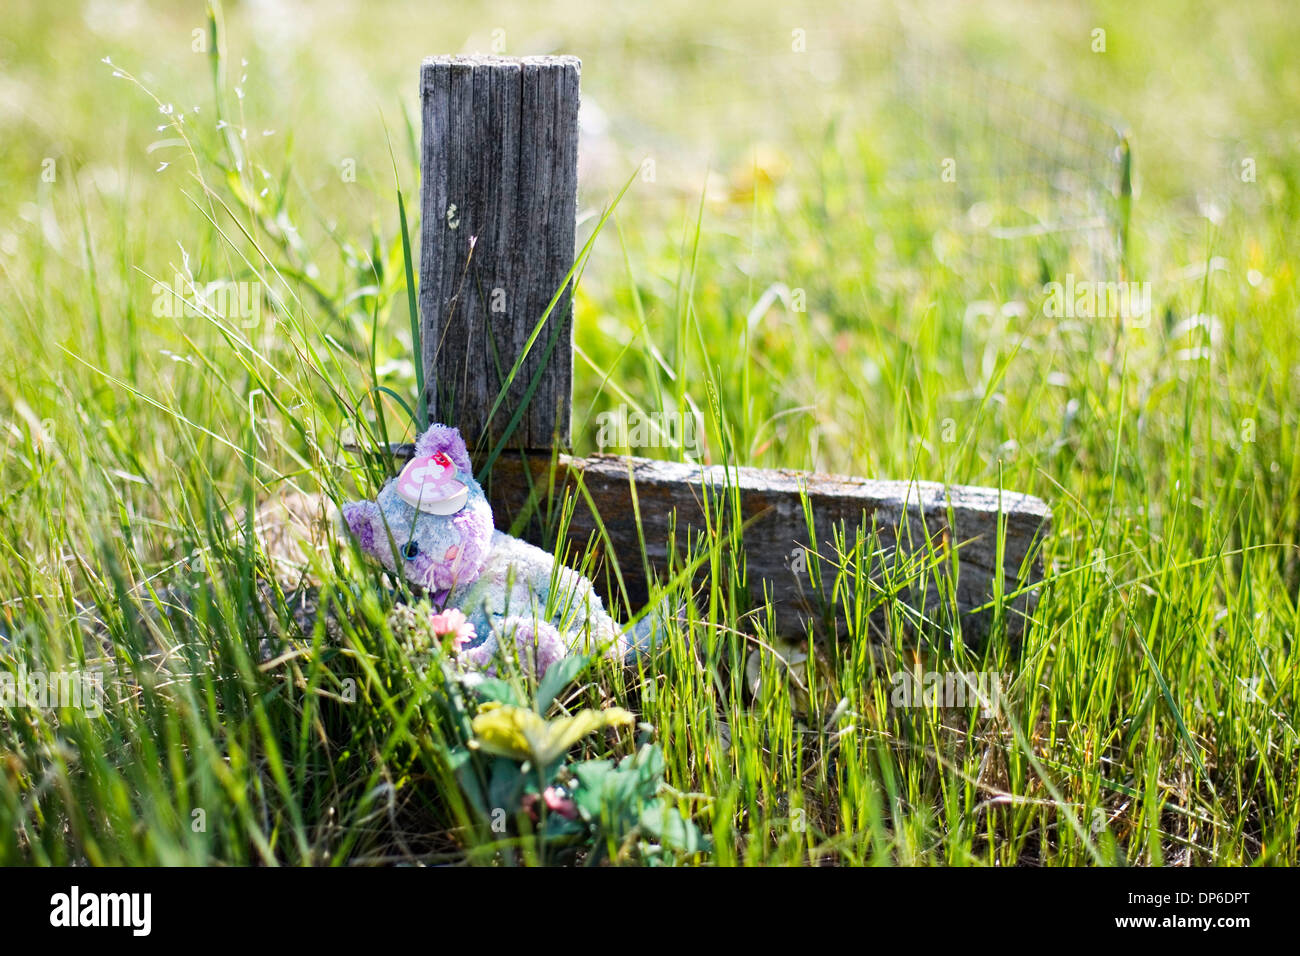 May 31, 2006 - Wounded Knee, South Dakota, USA - A teddy bear sits by a wooden cross at the Wounded Knee Massacre Stock Photo